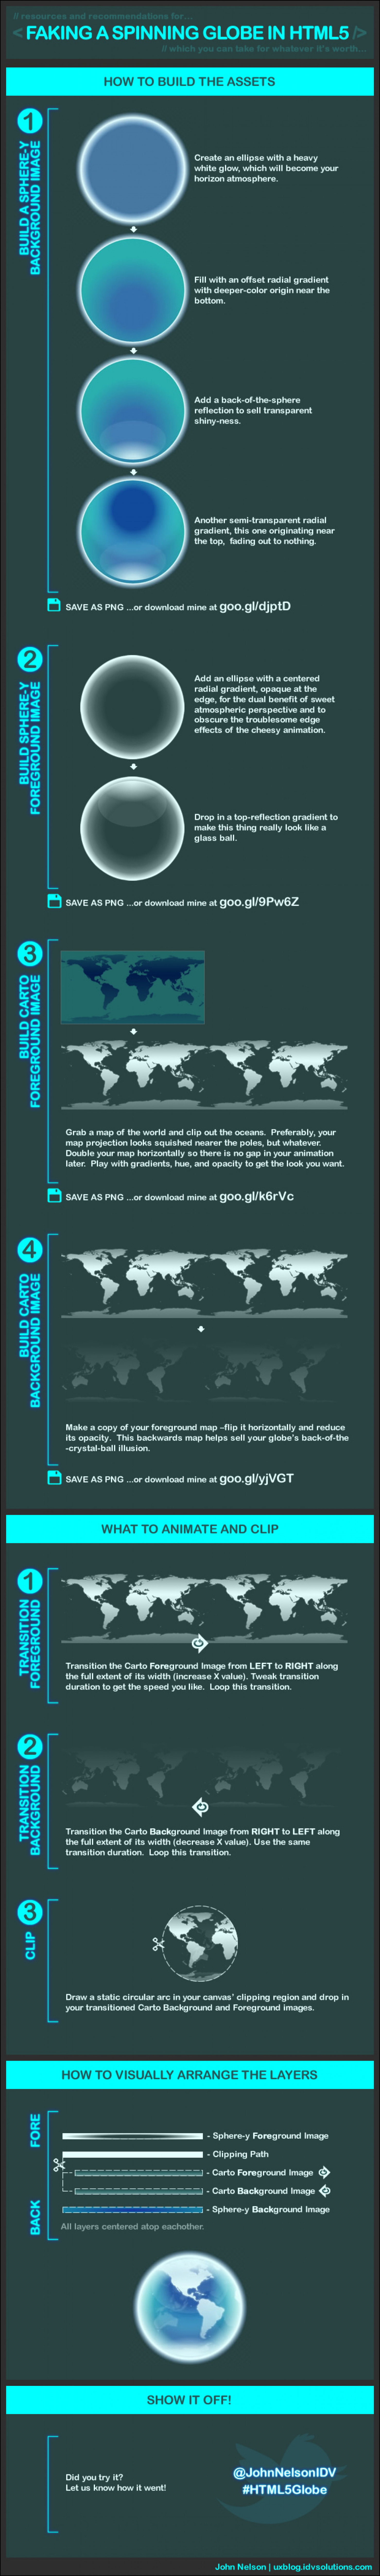 Faking a Spinning Globe in HTML5 Infographic